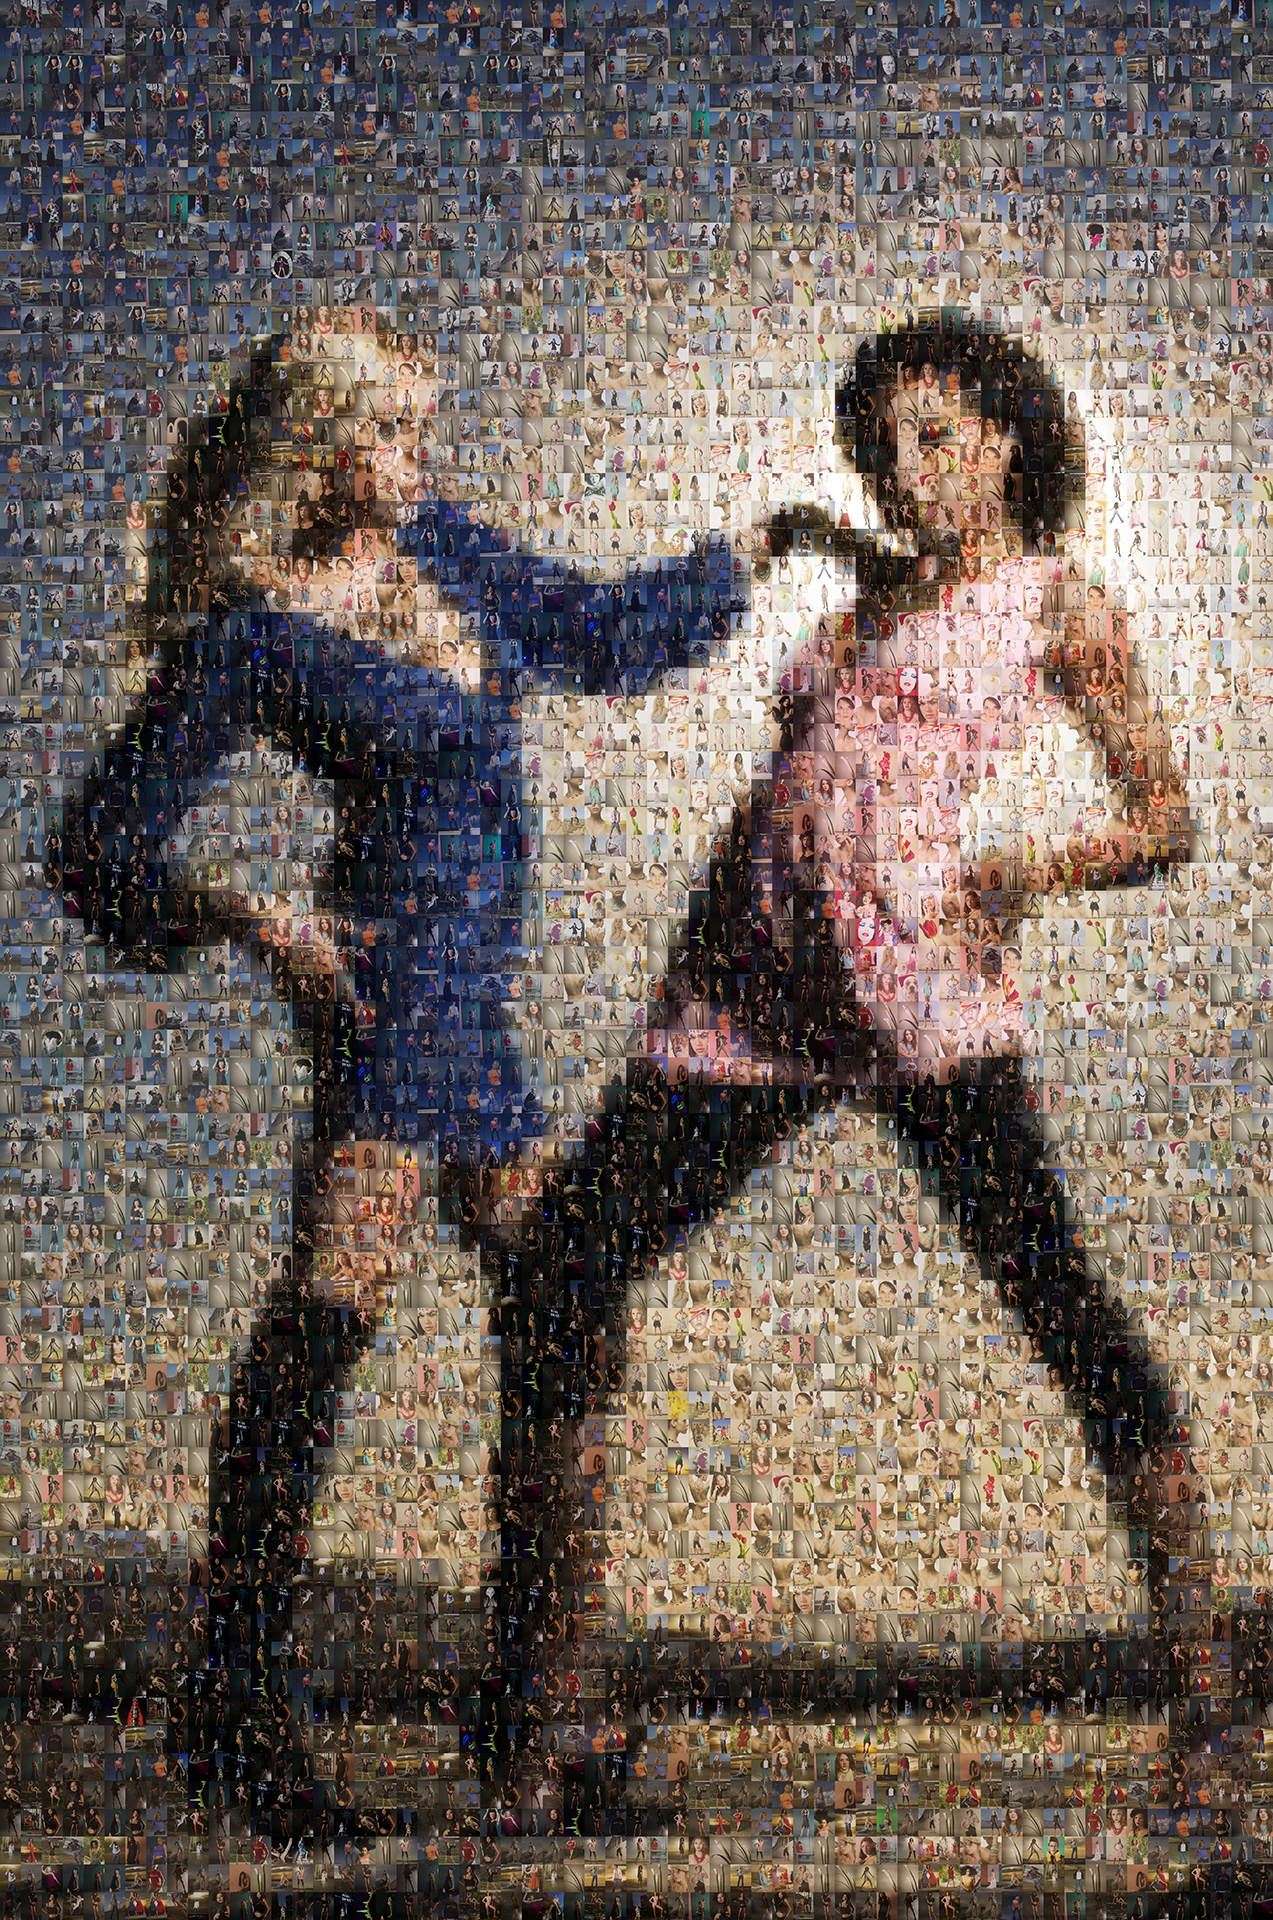 photo mosaic Two fashion models created using 432 photos of models